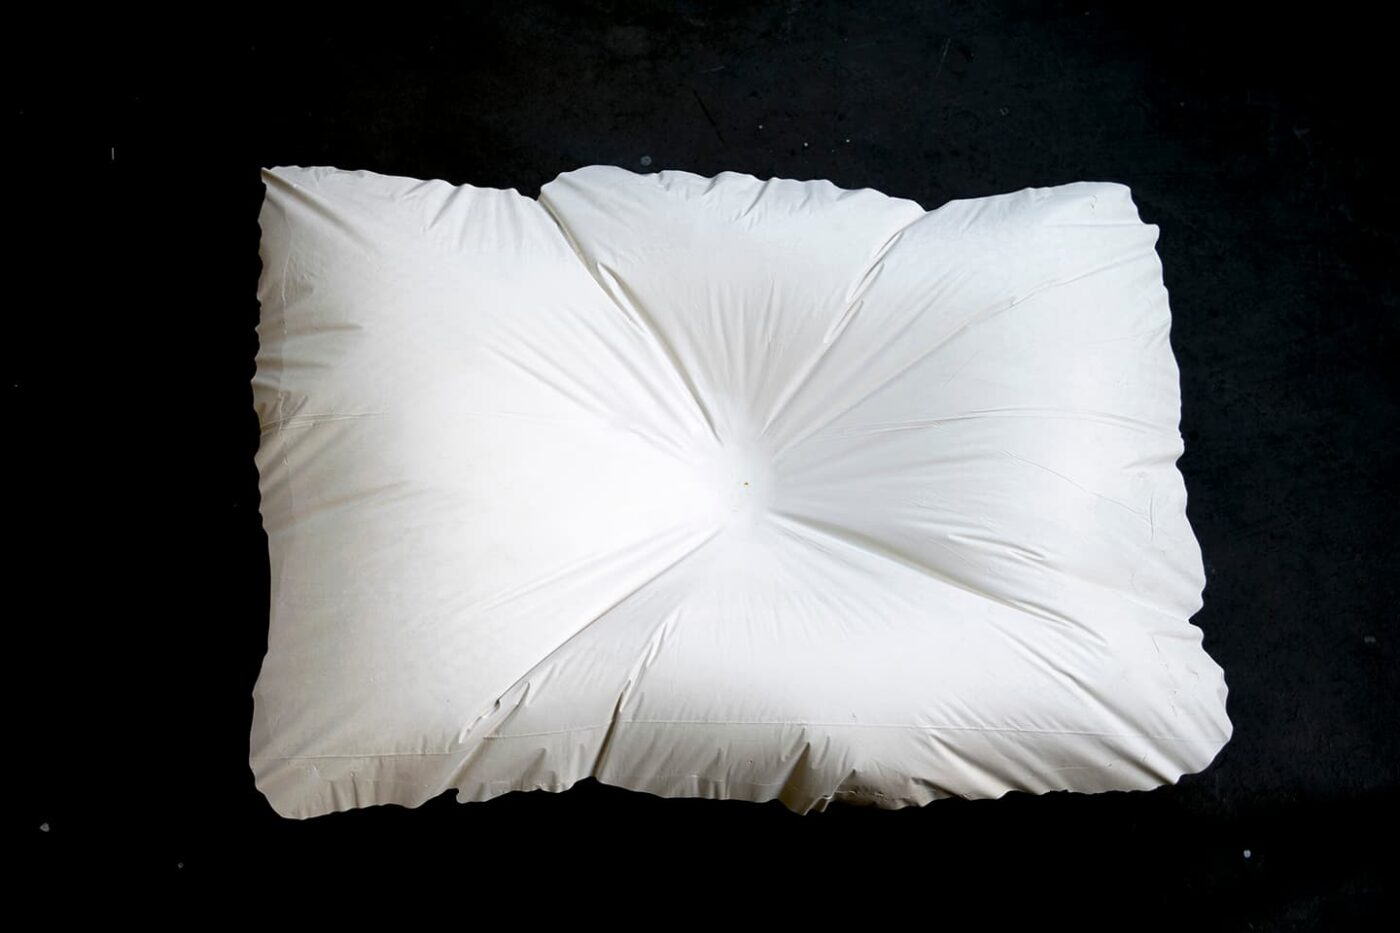 <strong>Evidence of Sleep III</strong>, (detail) installtion of 5 plaster pillows, Susan Aldworth, 2017. Photograph by Paul Hughes.